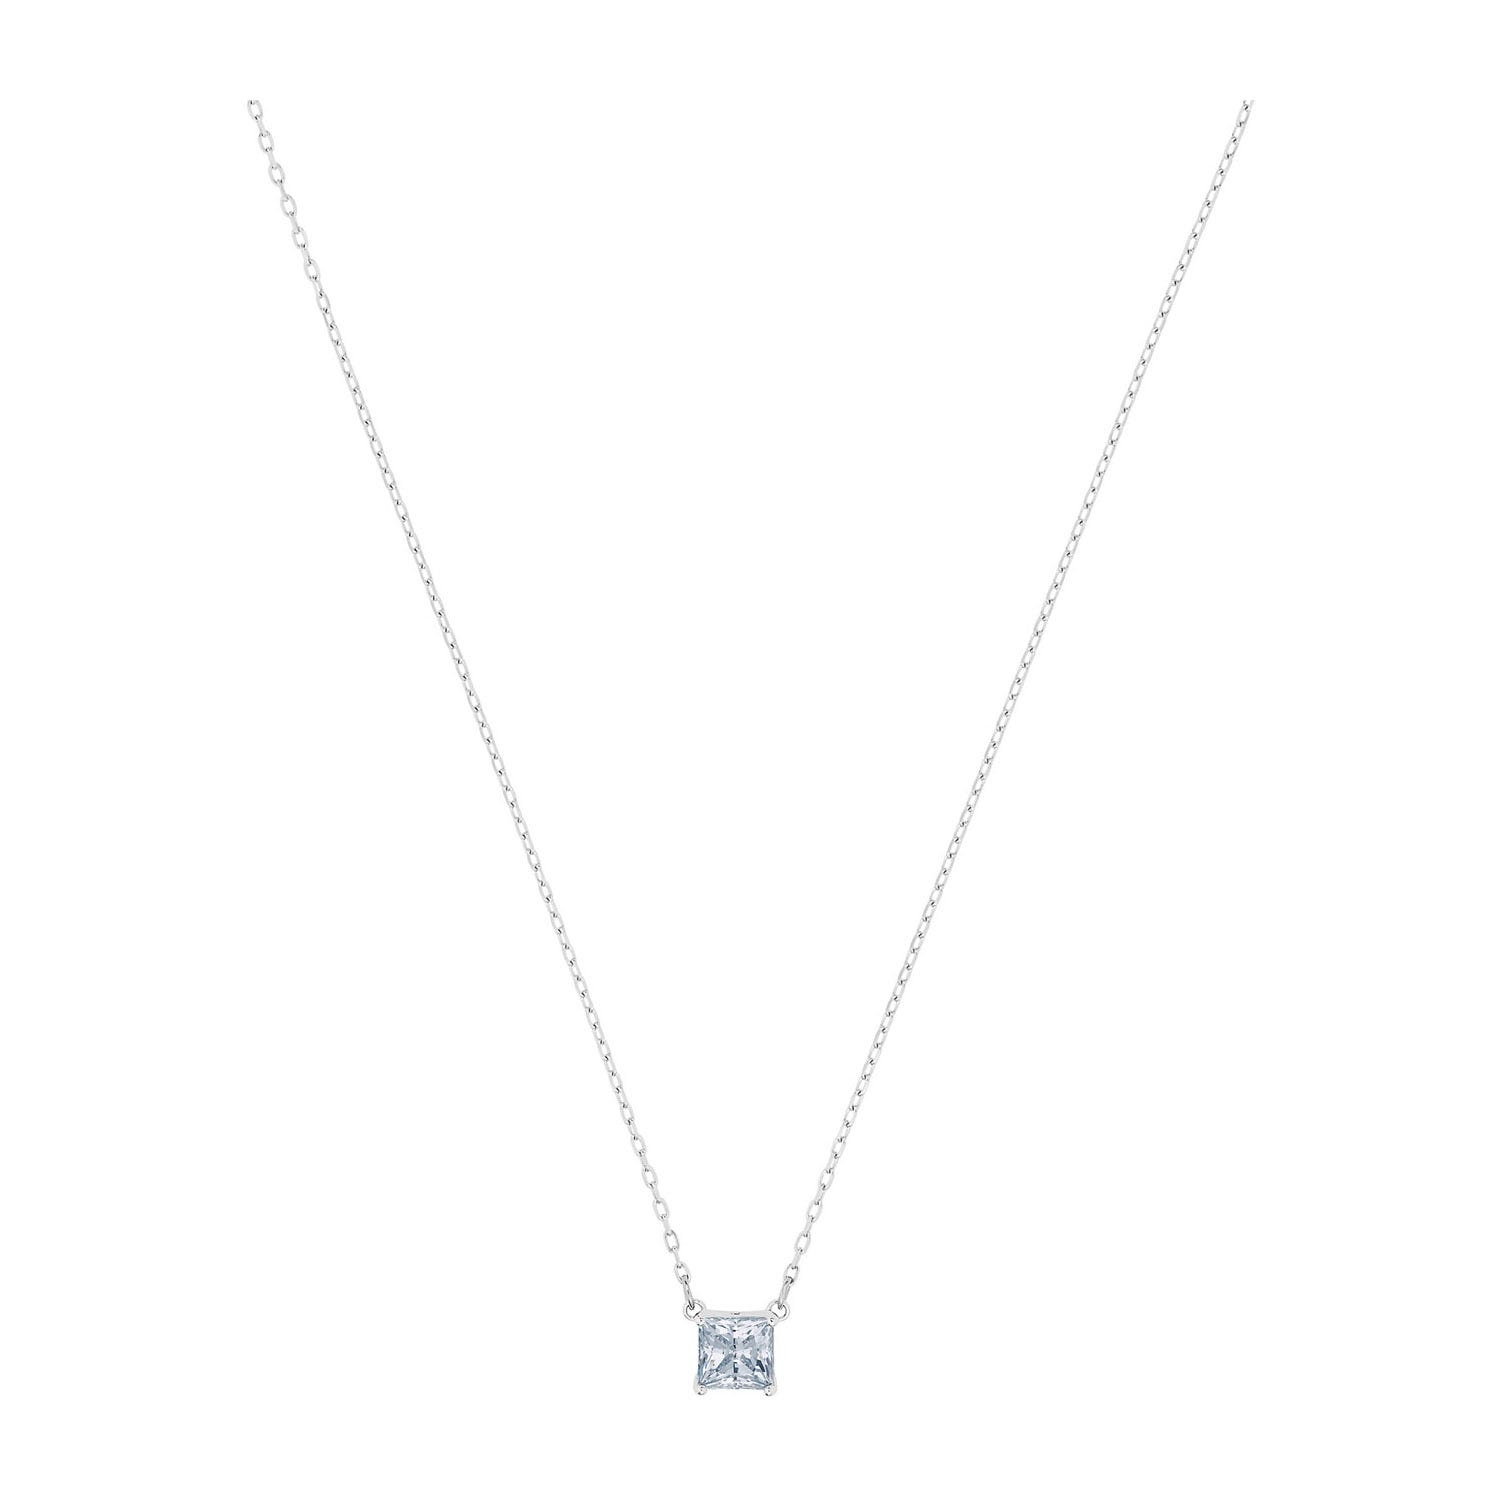 Swarovski Attract Collection Rhodium Plated White Necklace